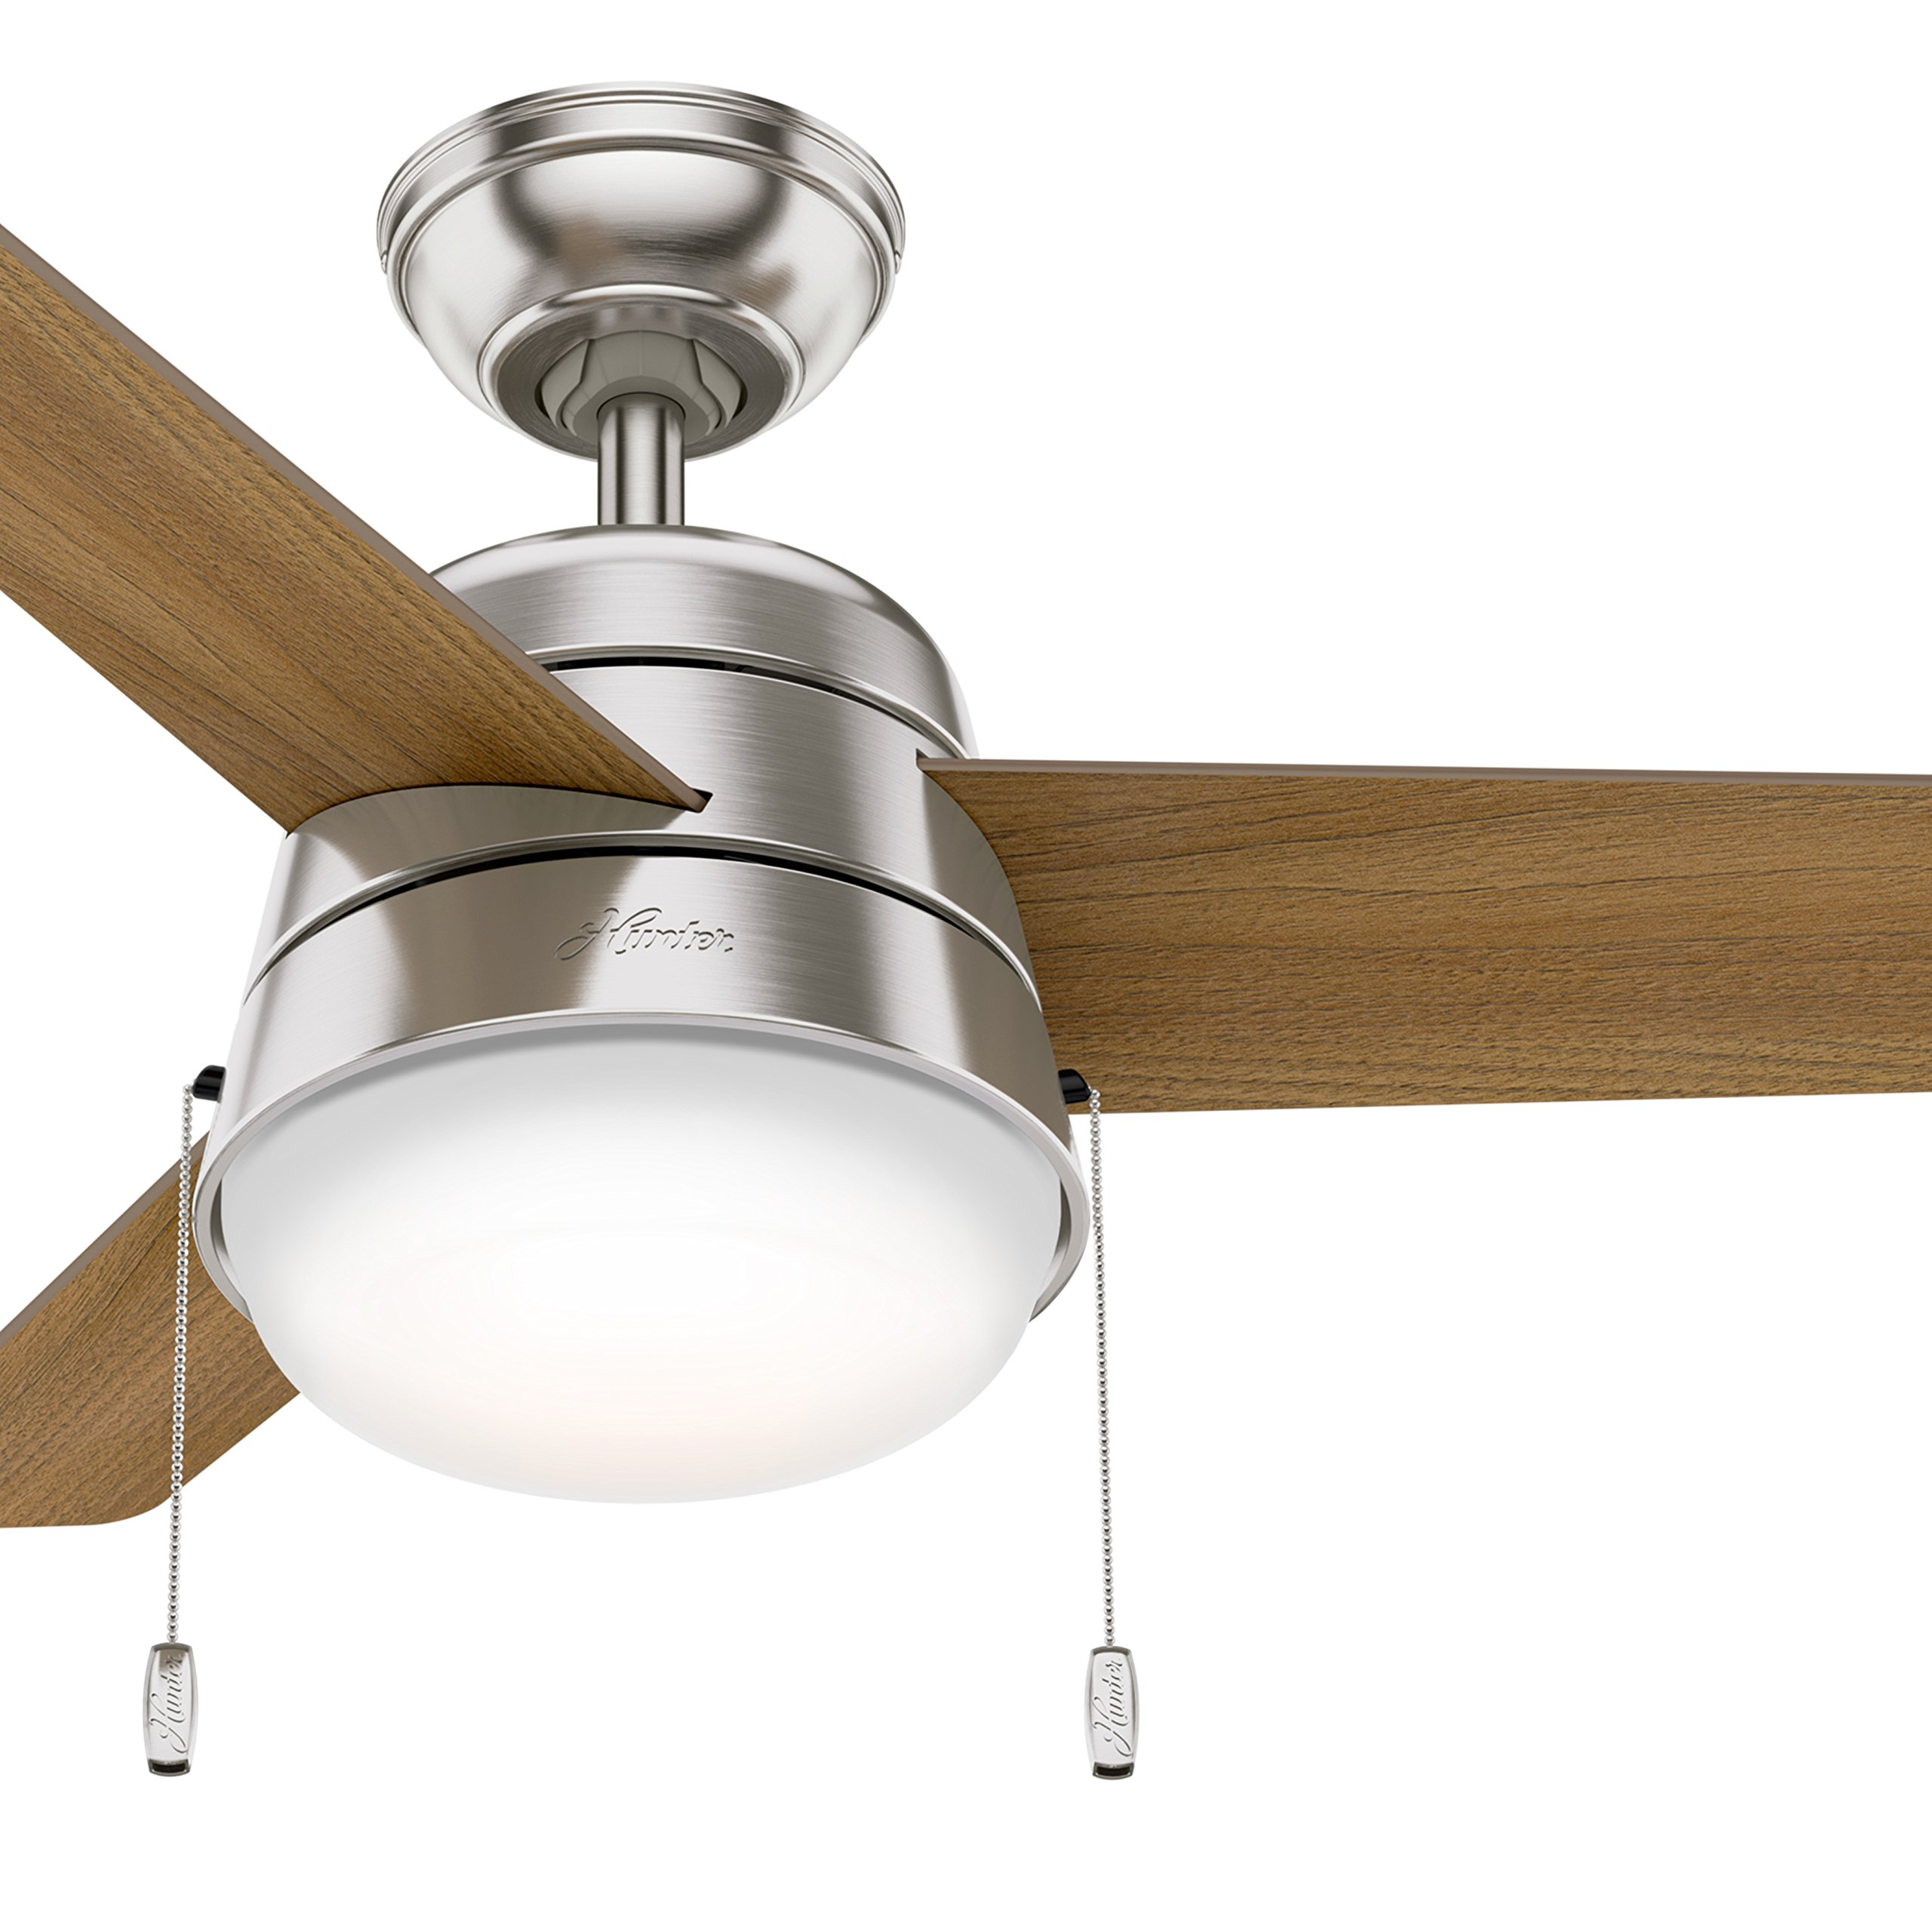 Hunter 36 in. Ceiling Fan in Brushed Nickel with LED Light Kit (Certified Refurbished)